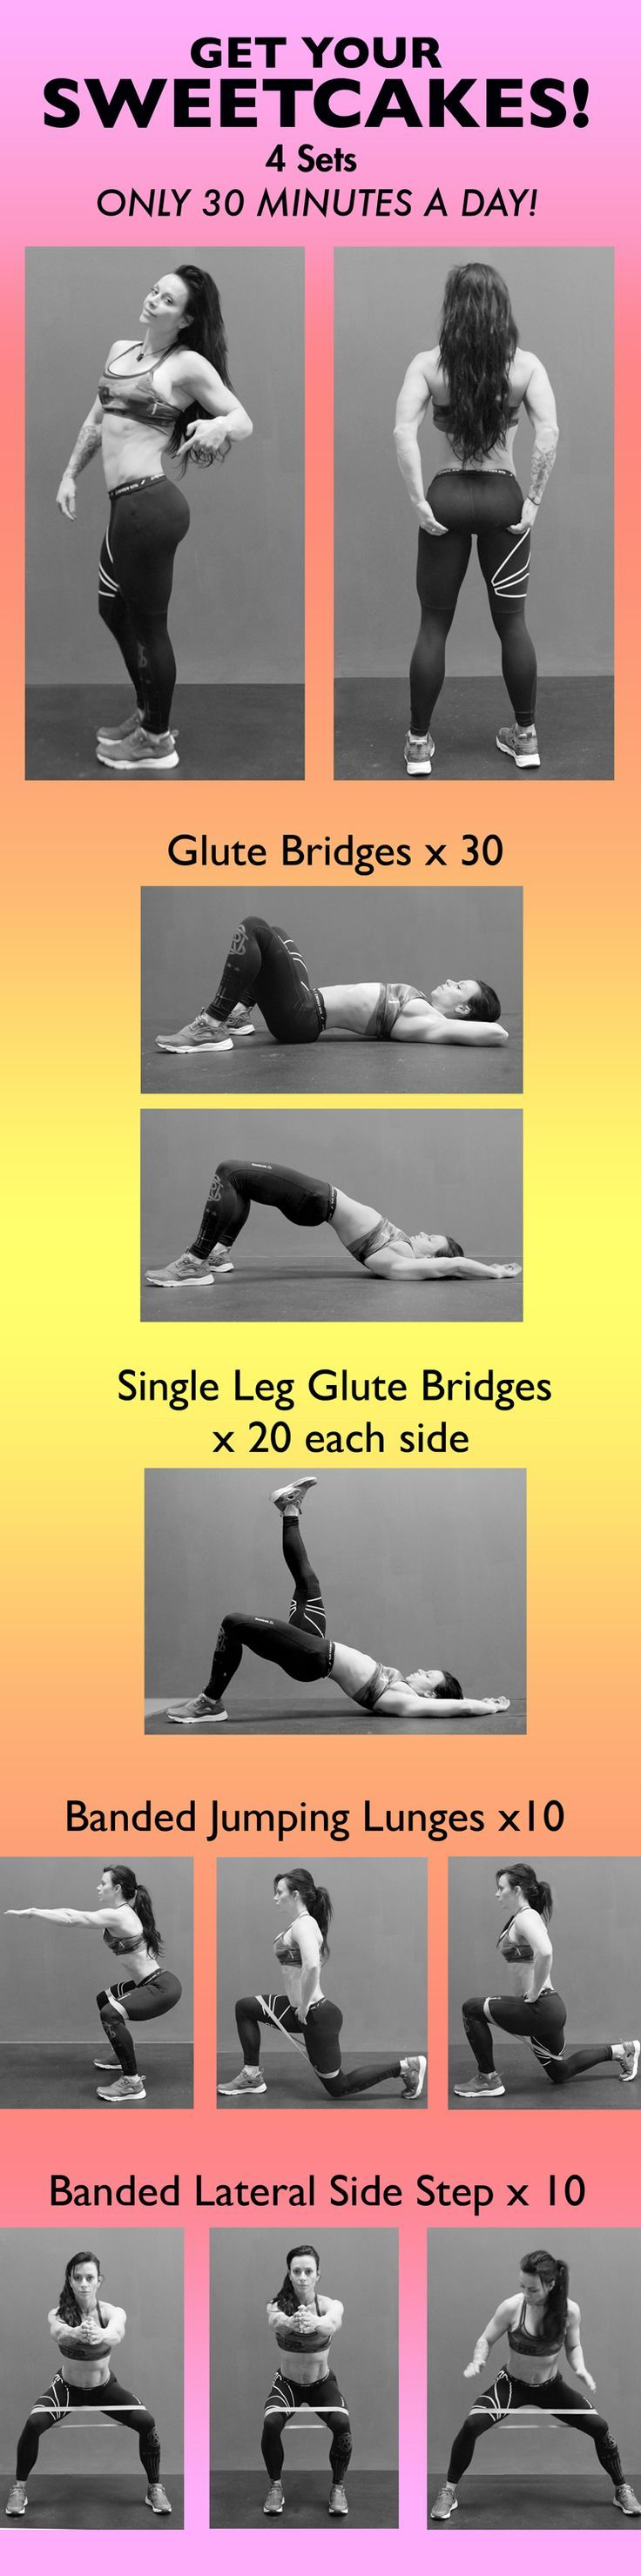 Excerise: 4 Minute Afternoon Burn Workout